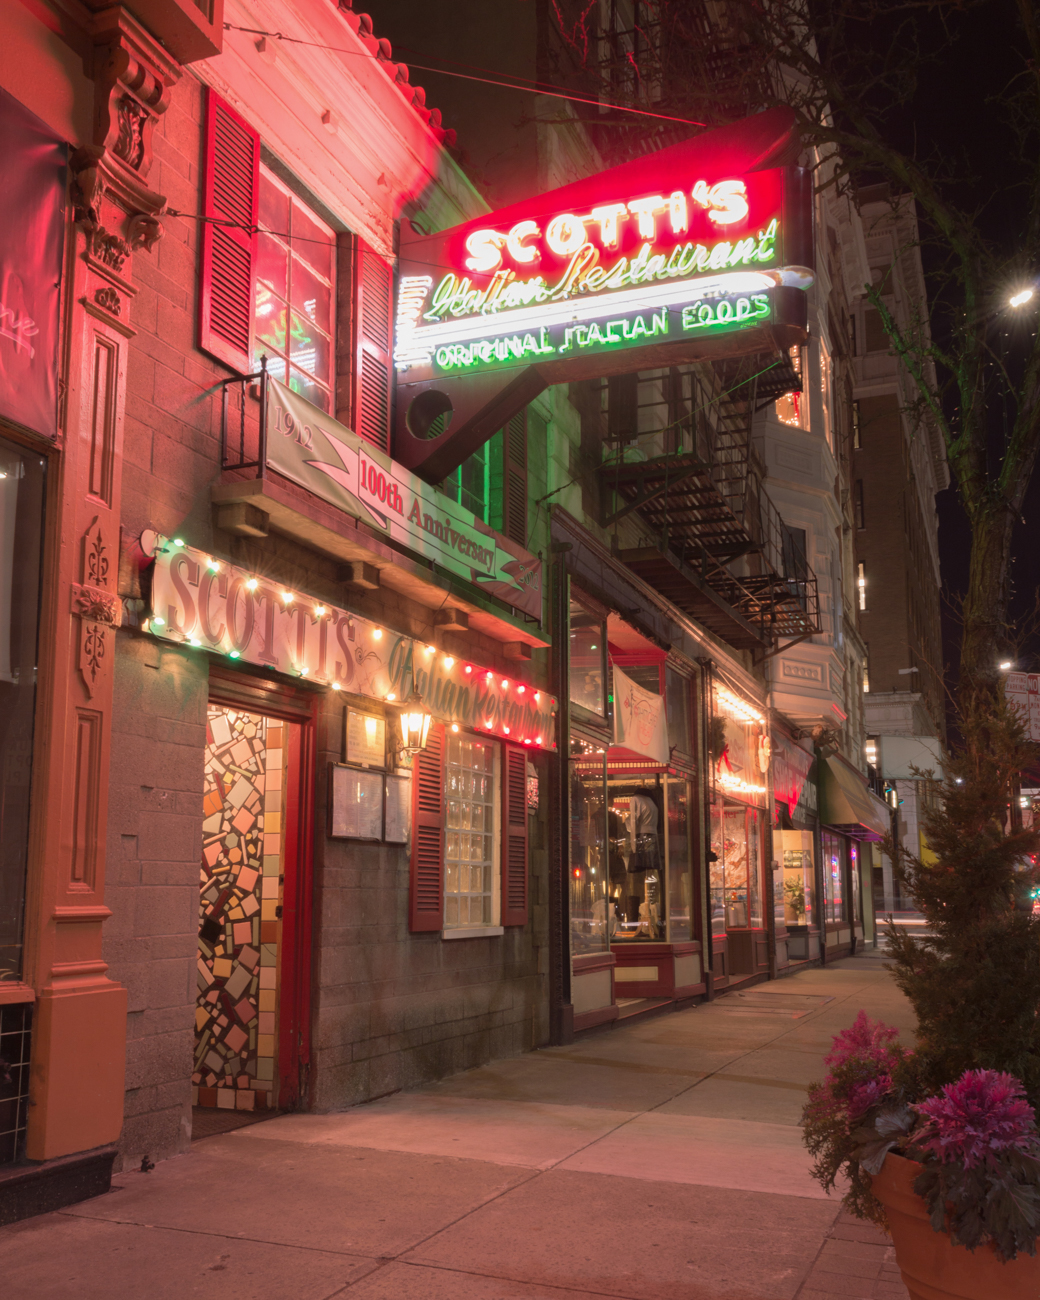 SIGN: Scotti's Italian Restaurant / ADDRESS: 919 Vine St, Cincinnati, OH 45202 // Image: Phil Armstrong, Cincinnati Refined // Published: 2.18.17